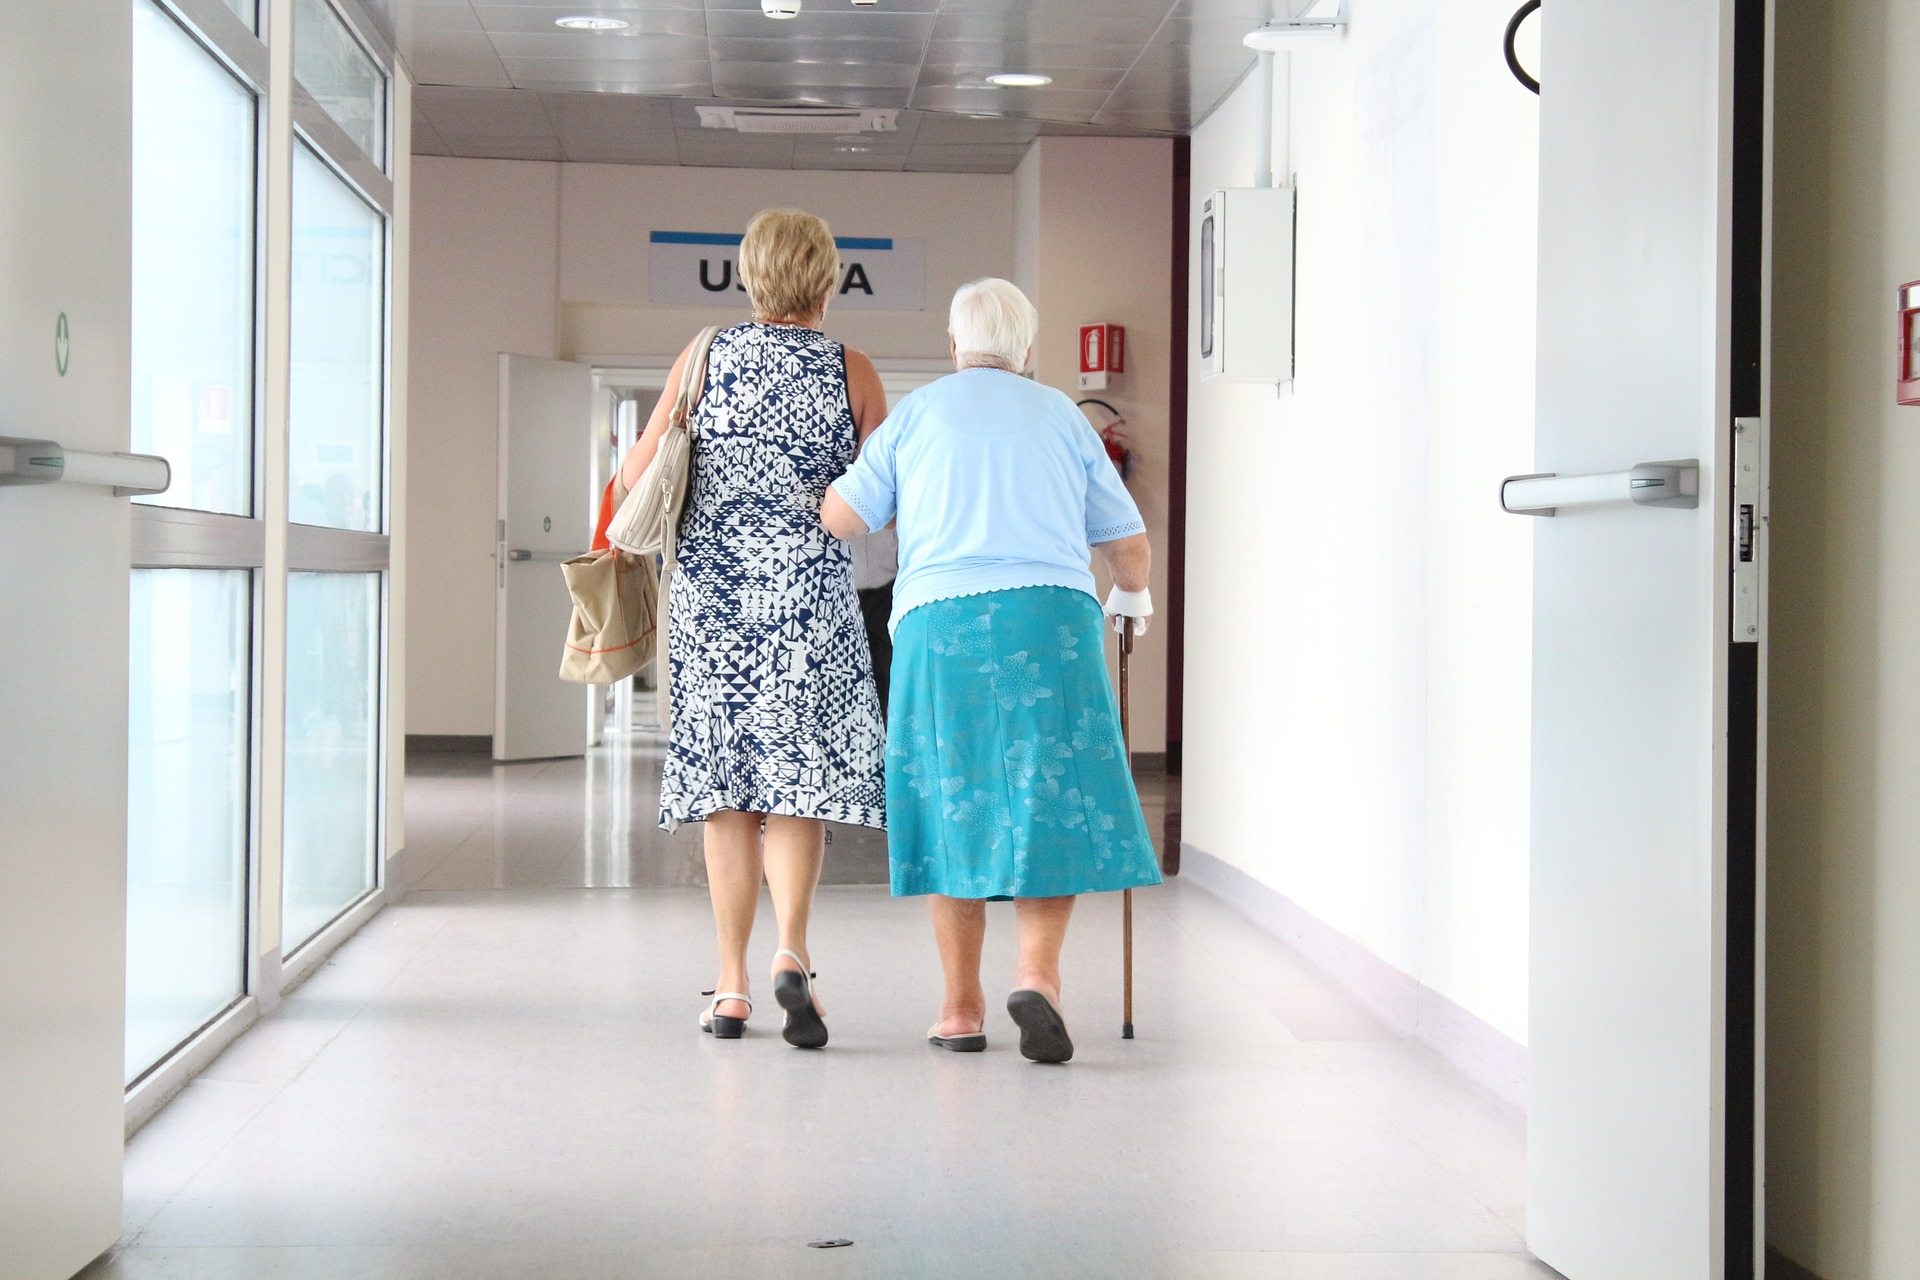 NHS England Funding to Showcase Good Practice in Healthcare